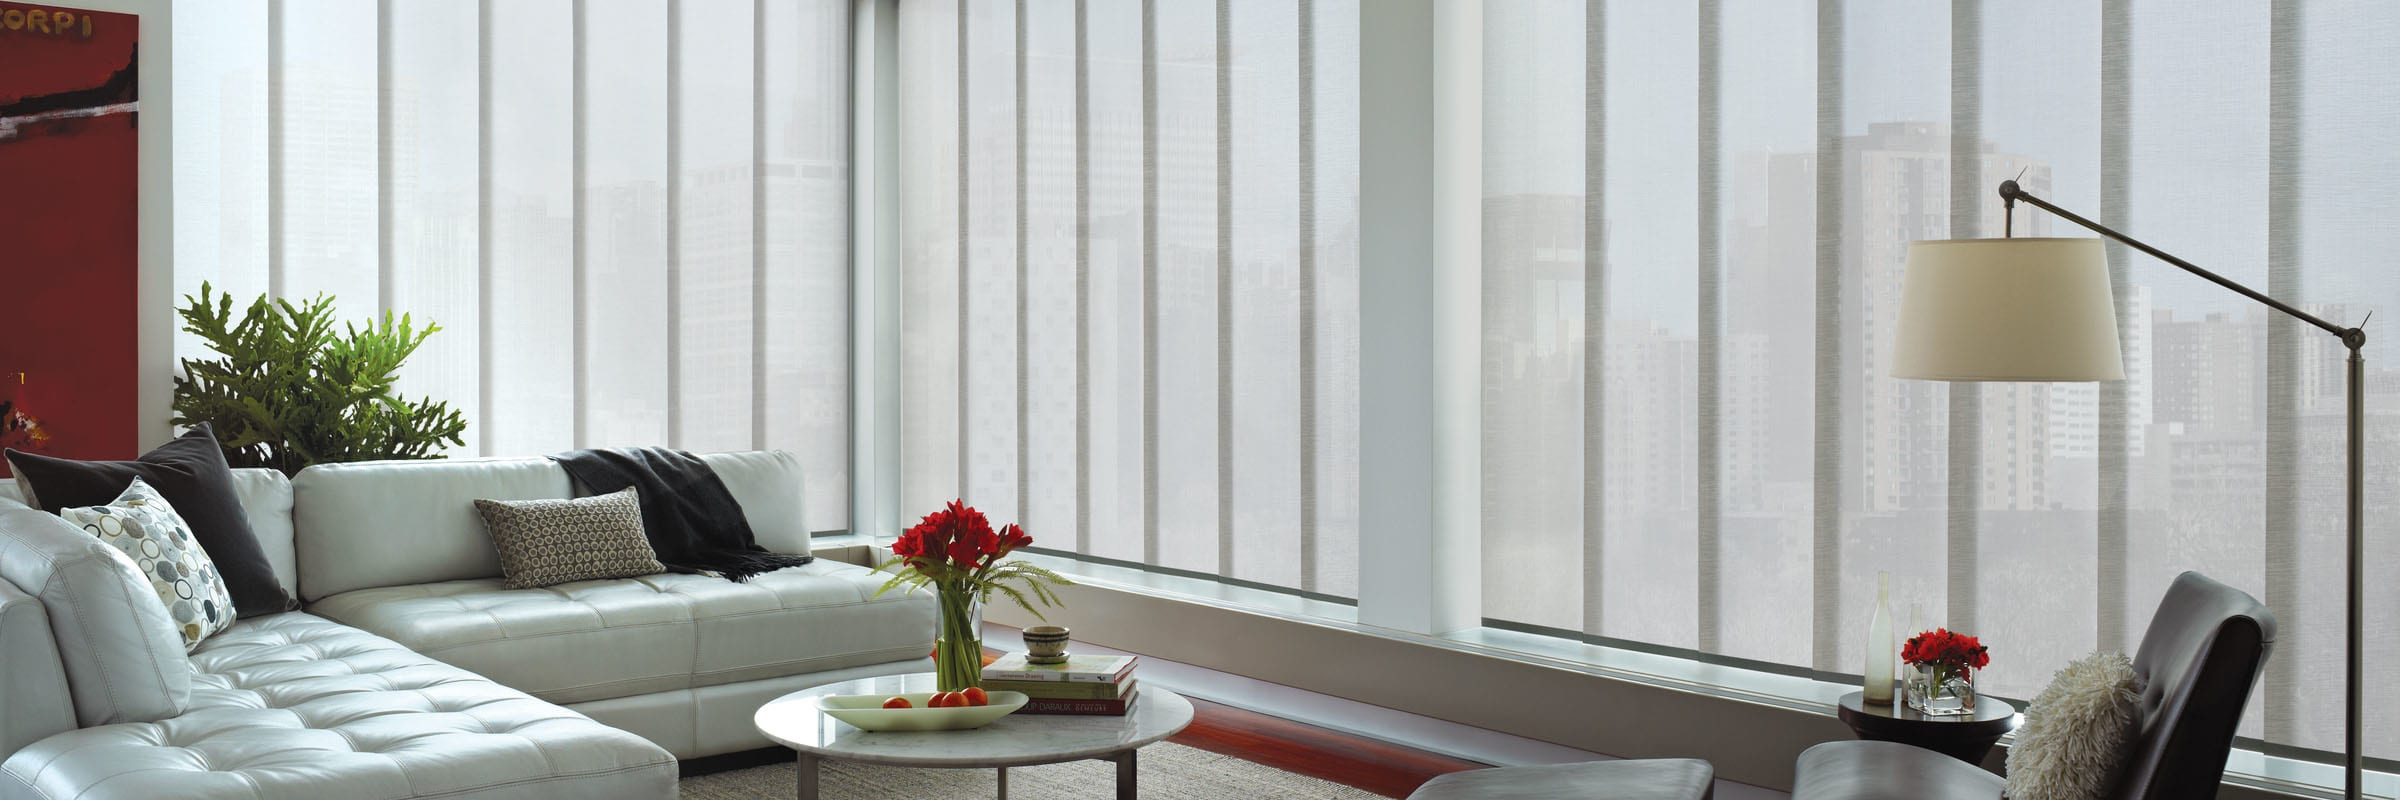 Sleek, Modern Panel Track Window Blinds